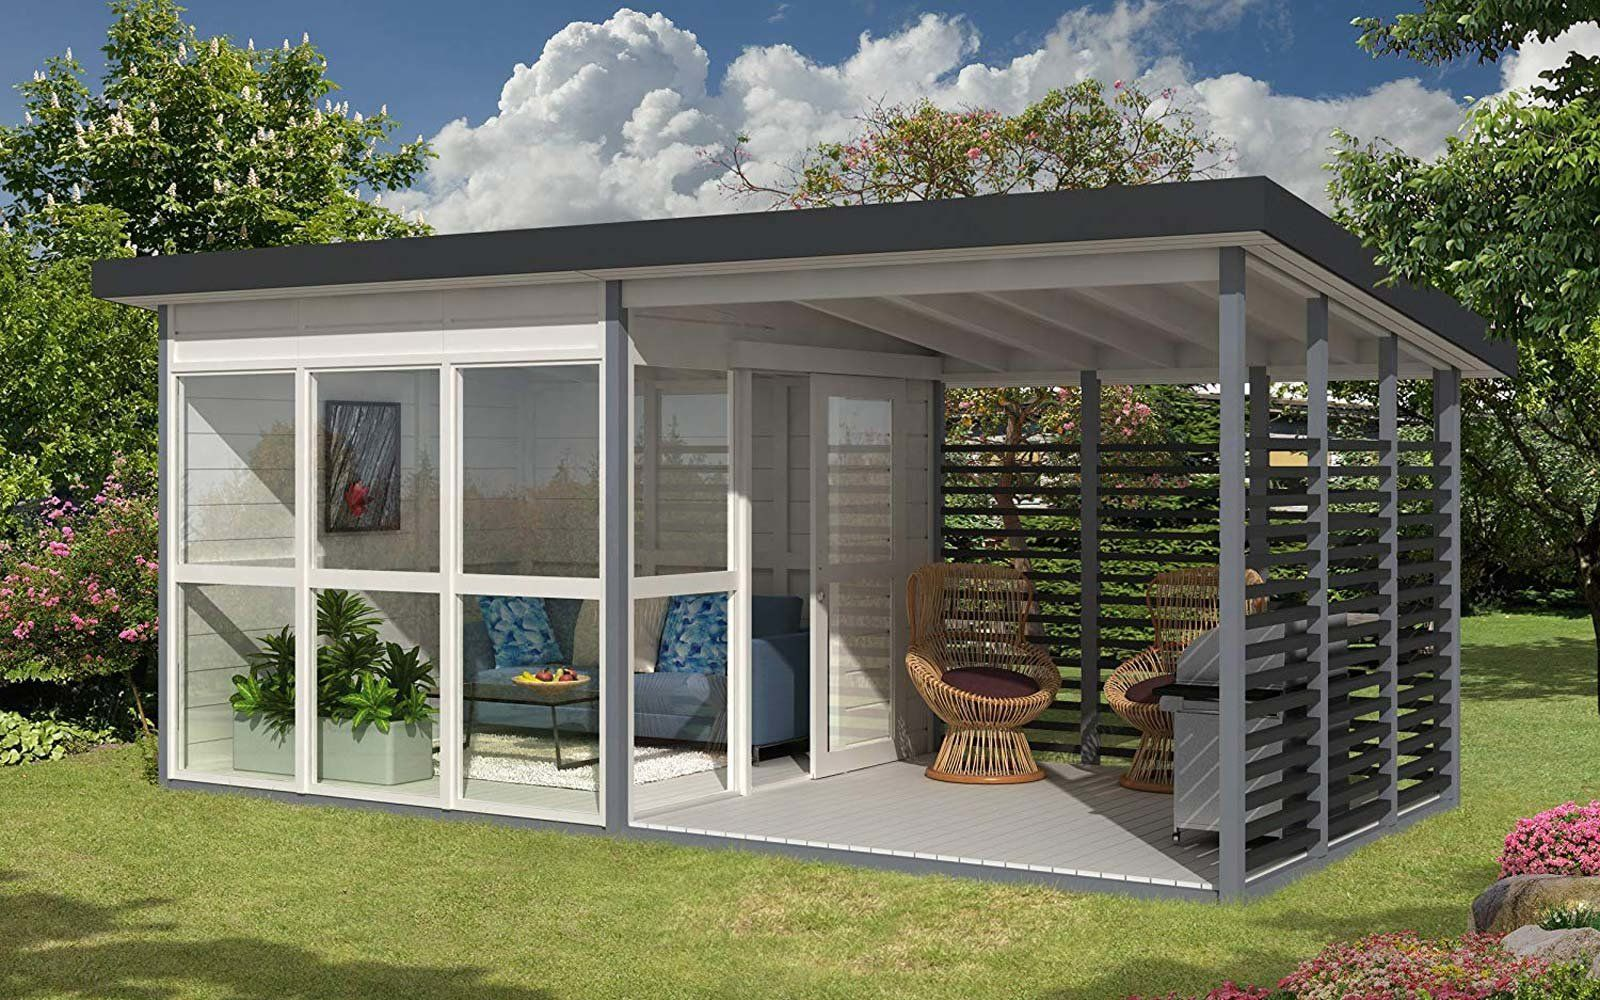 Amazon Is Selling A Diy Backyard Guest House That You Can Build In